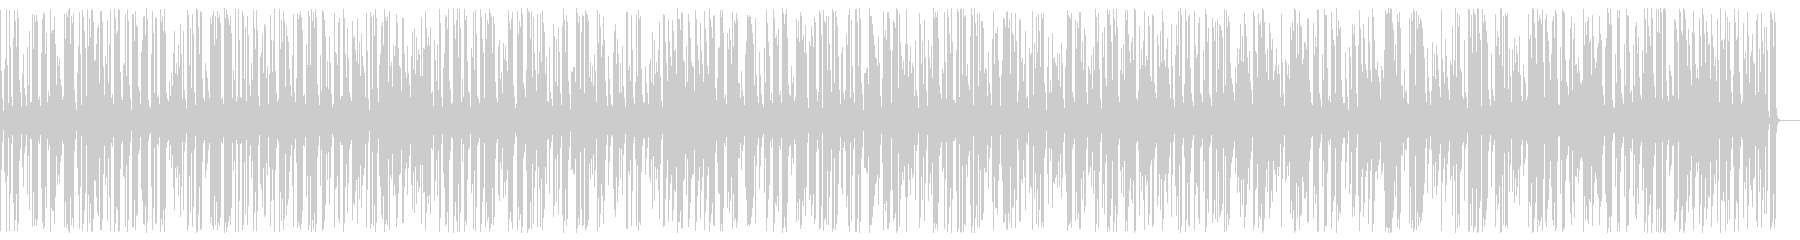 Exciting fashionable food Jazz piano BGM's unreproduced waveform